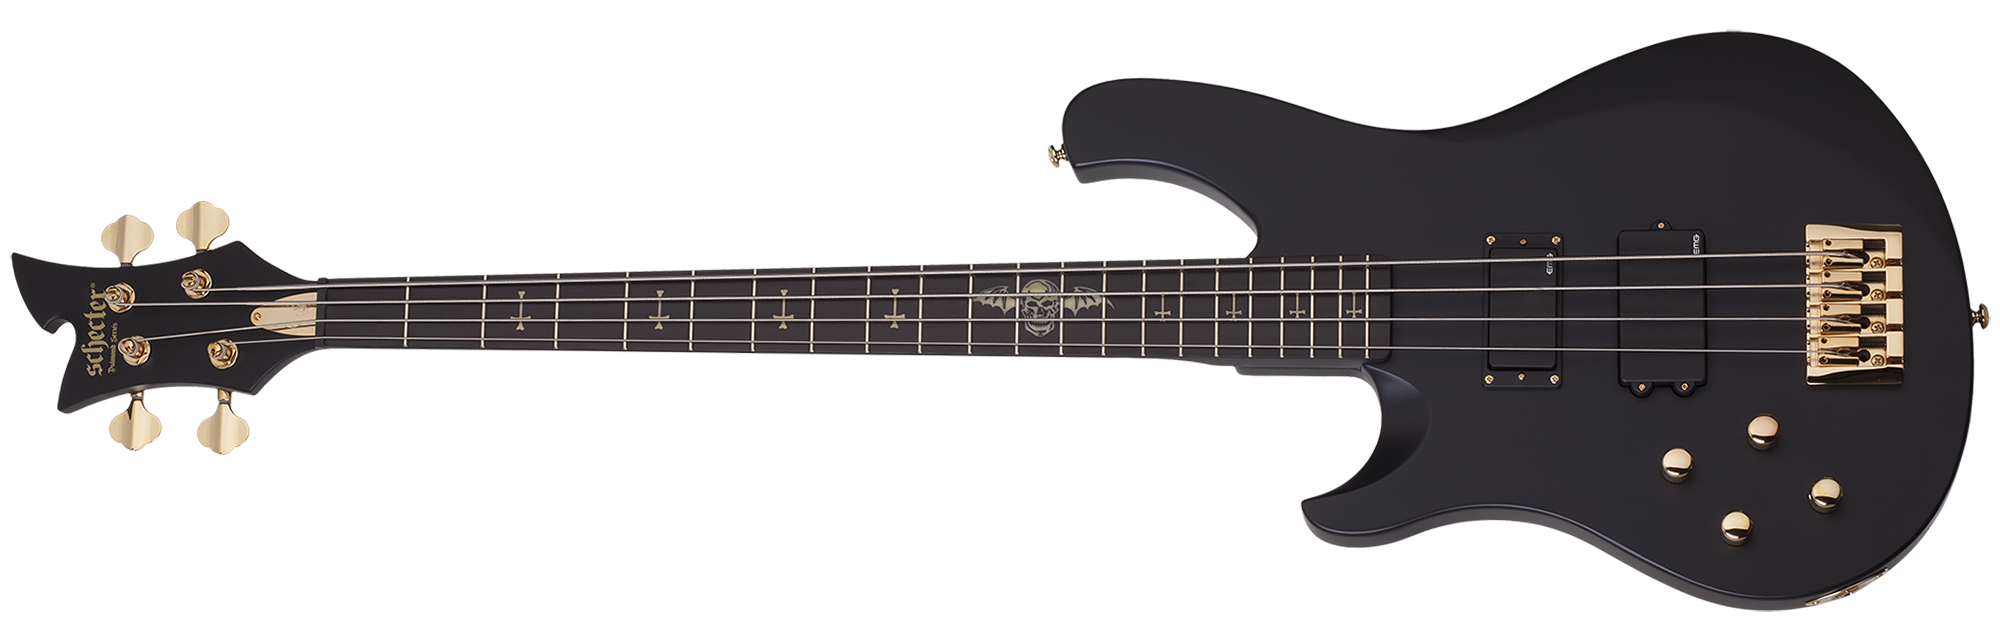 Johnny Christ Bass LH Satin Black (SBK) SKU #212